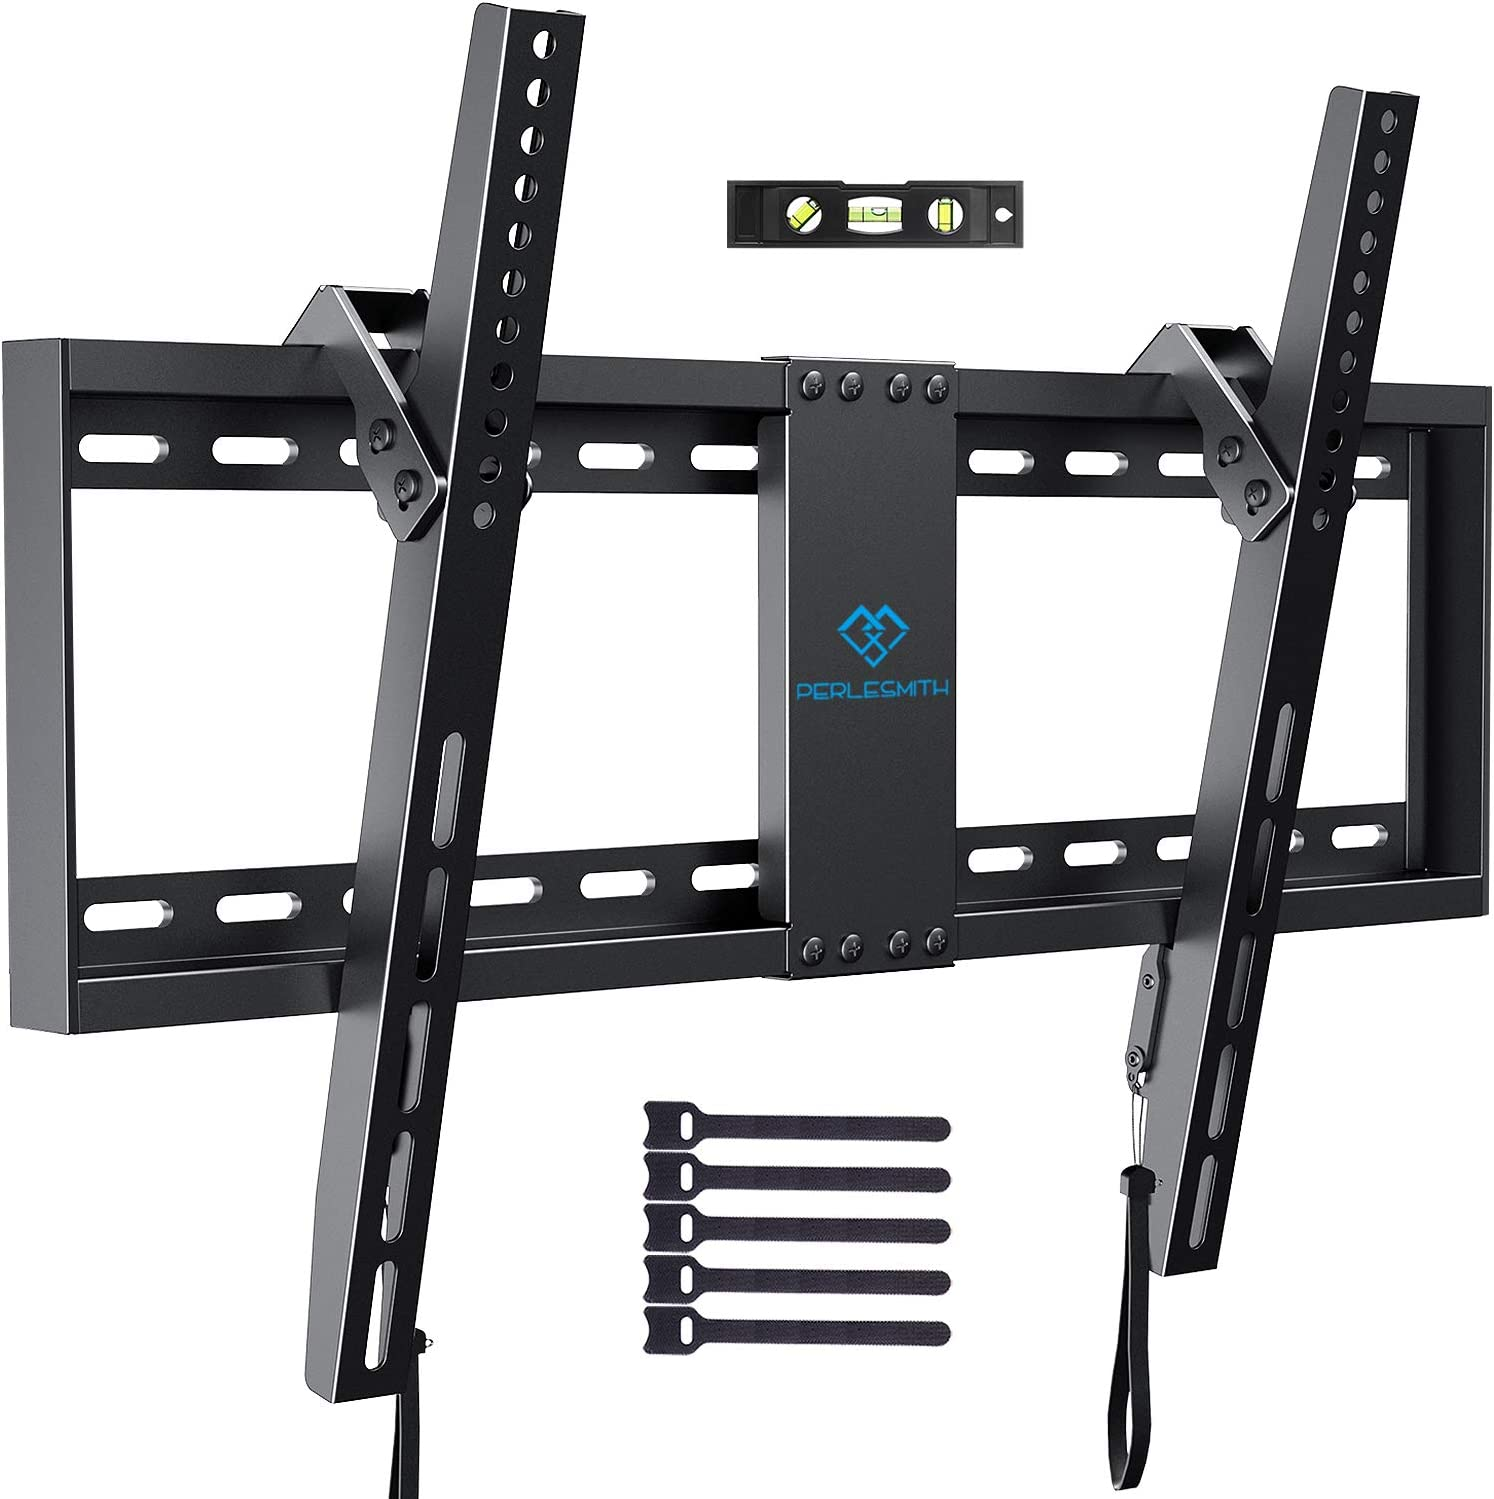 Max VESA 600x400mm Load Capacity 99 lbs XtremPro TV Wall Mount Bracket Premium Low-Profile Fixed for Flat Screen 32-70 Inch LCD 4K or Plasma Flat Screen TVs TV Stays 0.6 Inch from The Wall LED